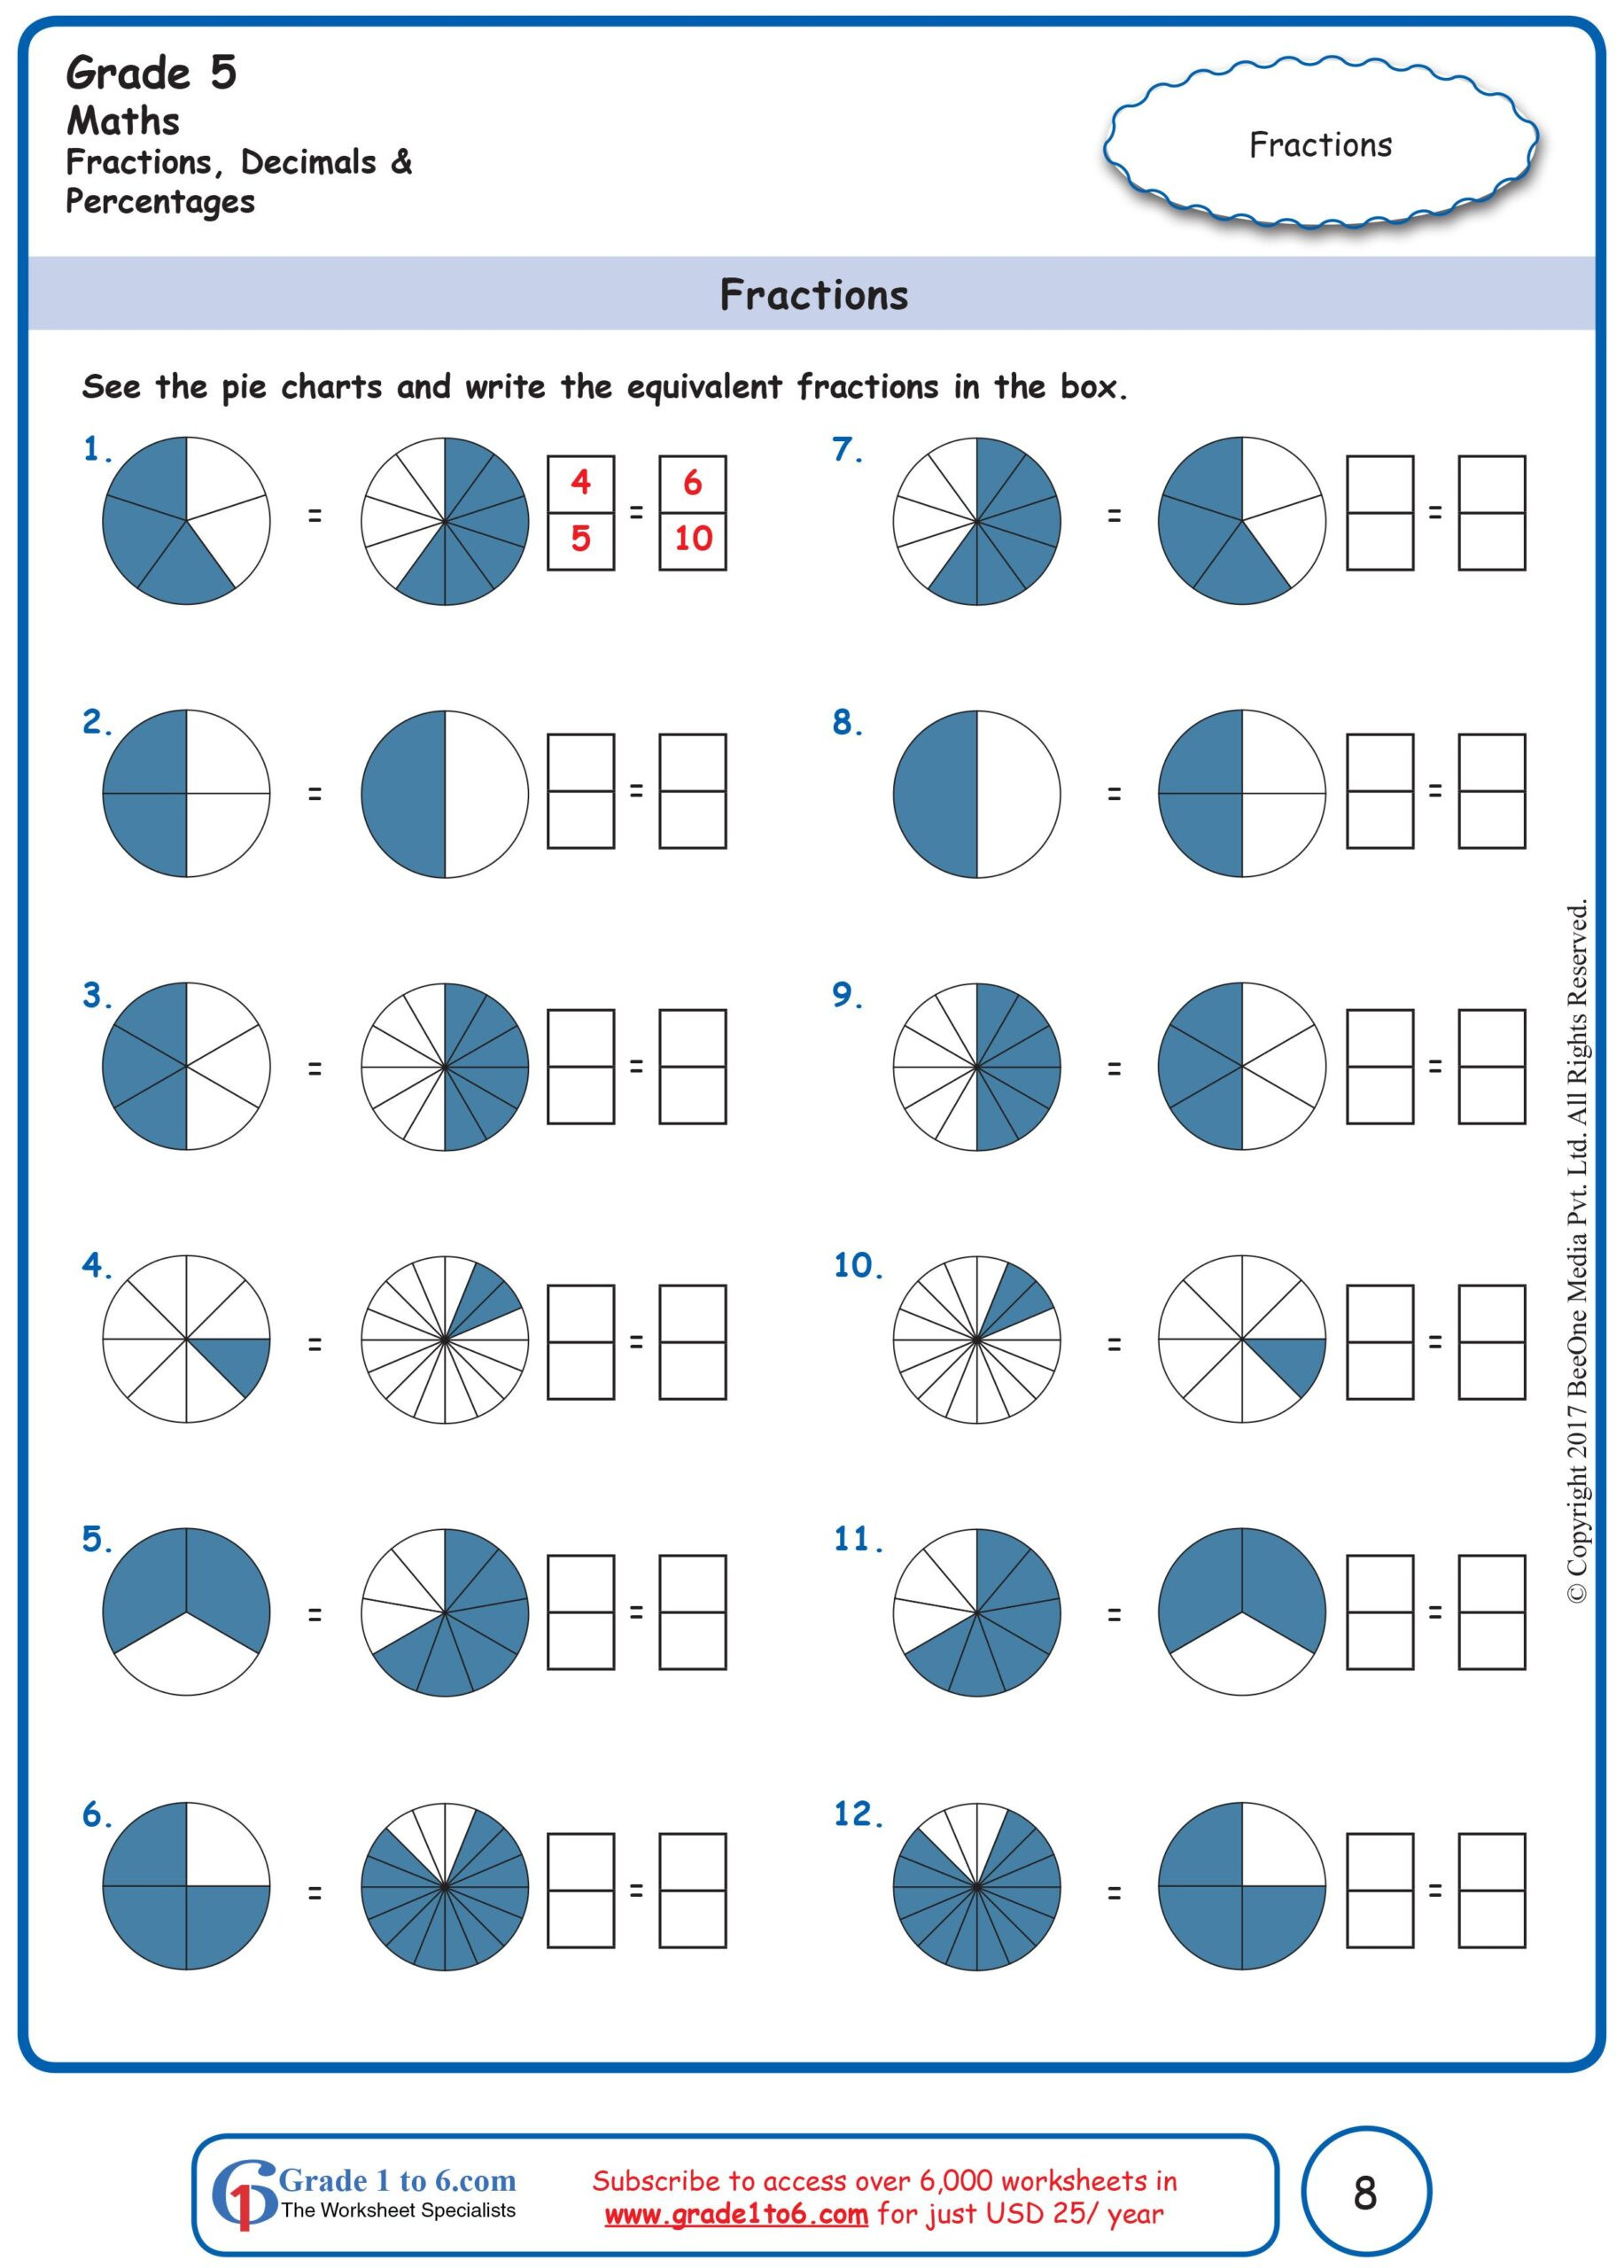 Fraction Worksheets First Grade Free Math Worksheets for Grade Through Subscribe to